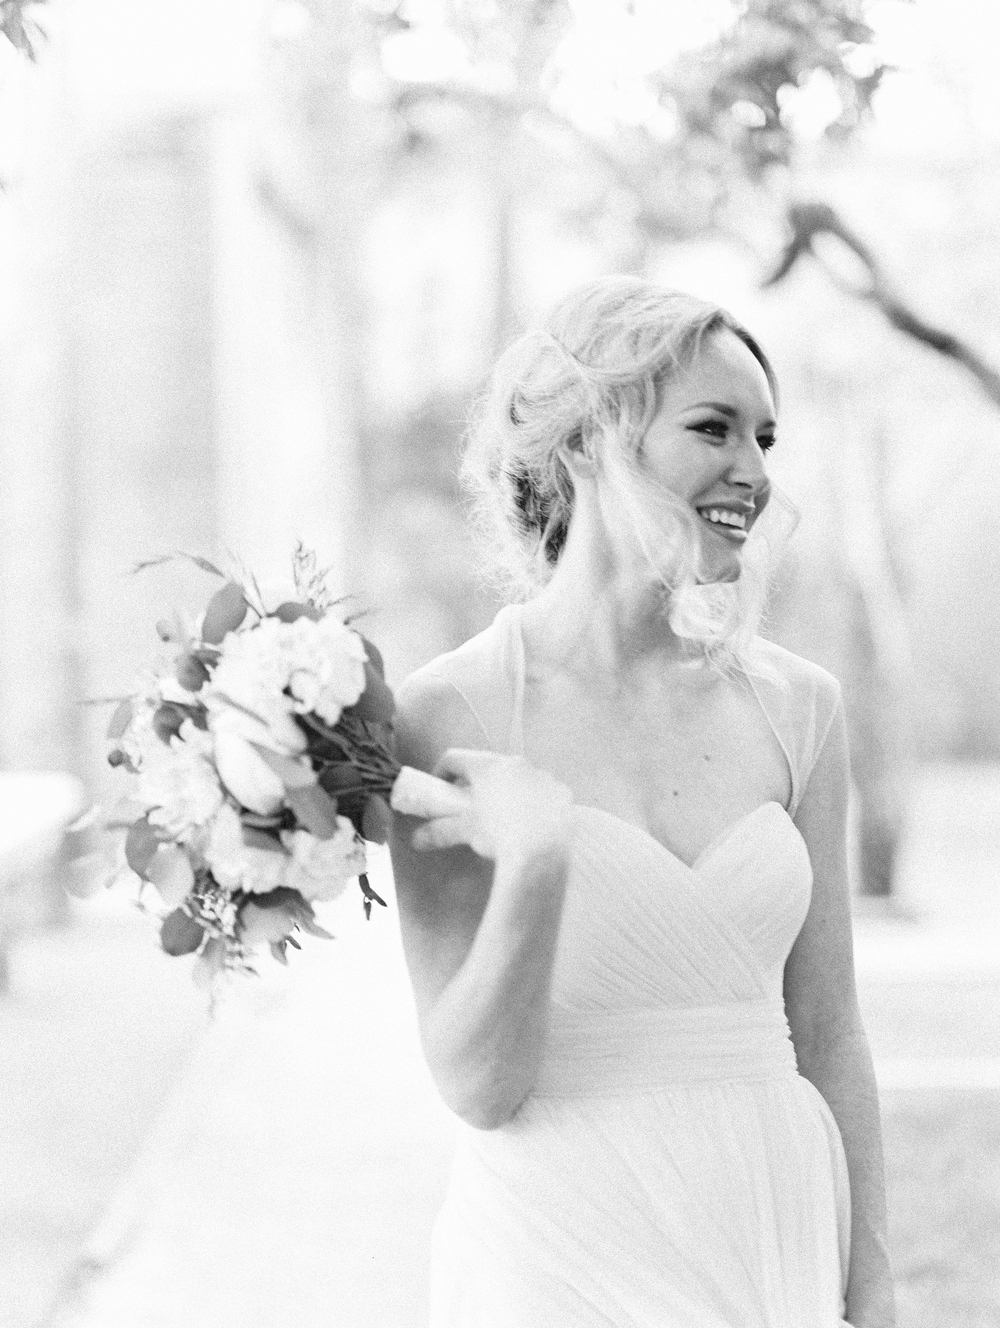 Blanc-Denver-wedding-inspiration-by-Lisa-O'Dwyer-Denver-fine-art-wedding-photographer-90.jpg